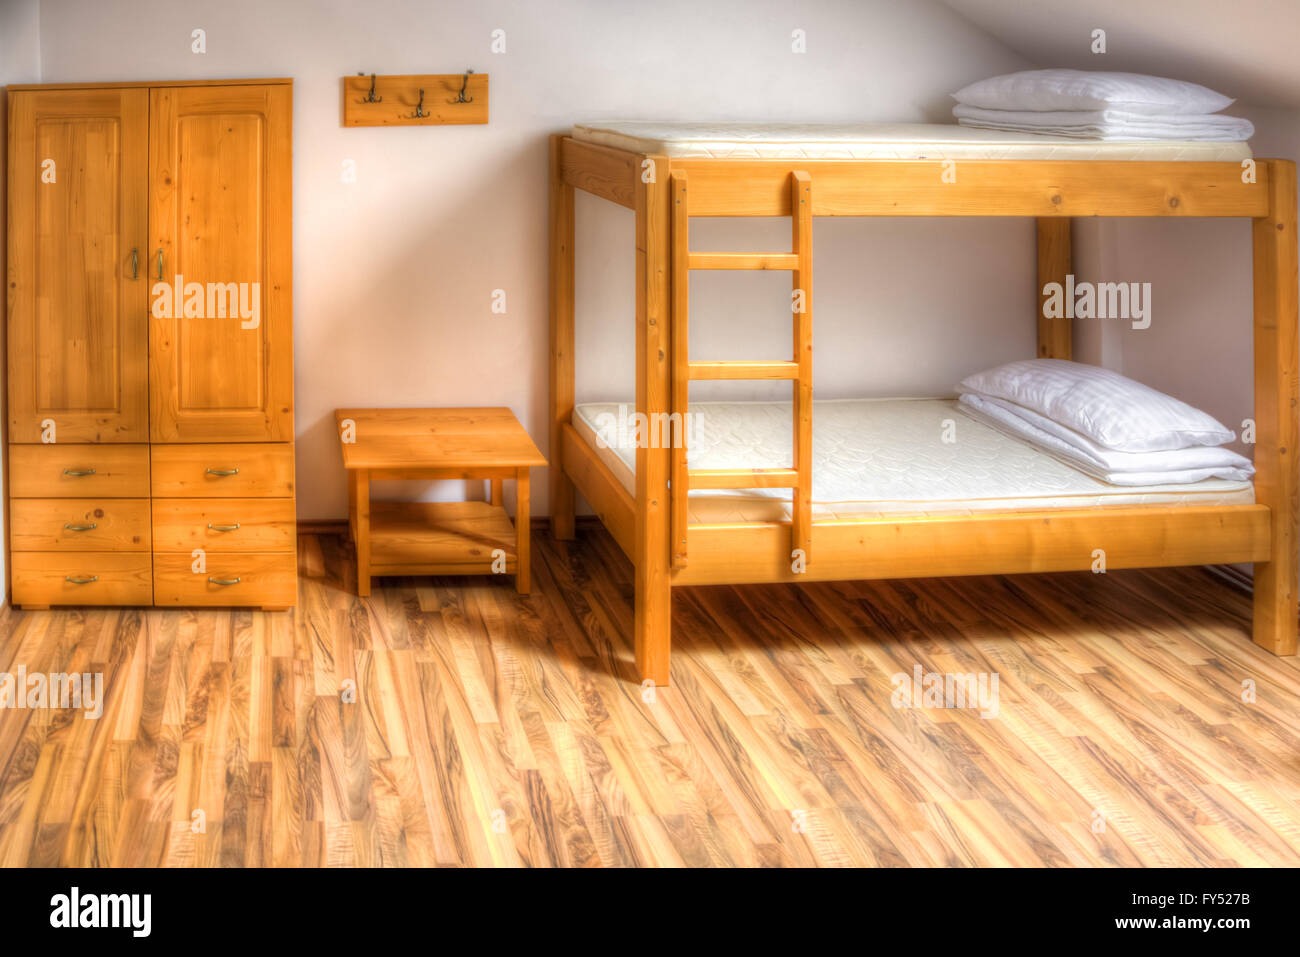 Picture of: Bedroom Interior With Double Bunk Beds High Resolution Stock Photography And Images Alamy